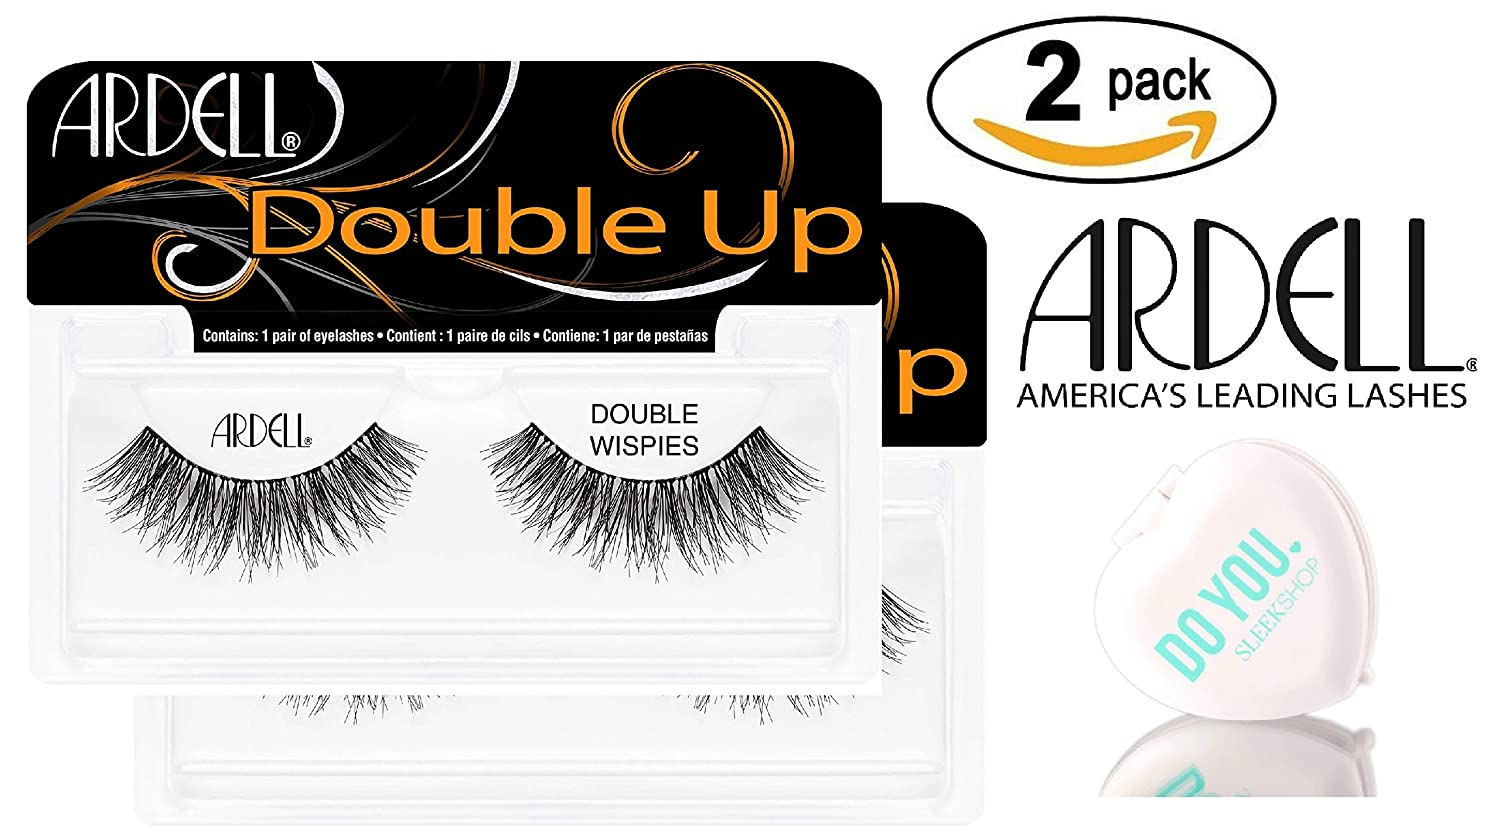 Amazon.com : Ardell Professional DOUBLE UP Lashes, 2-pack (with Sleek Compact Mirror) (204 Black (2-pack)) : Beauty